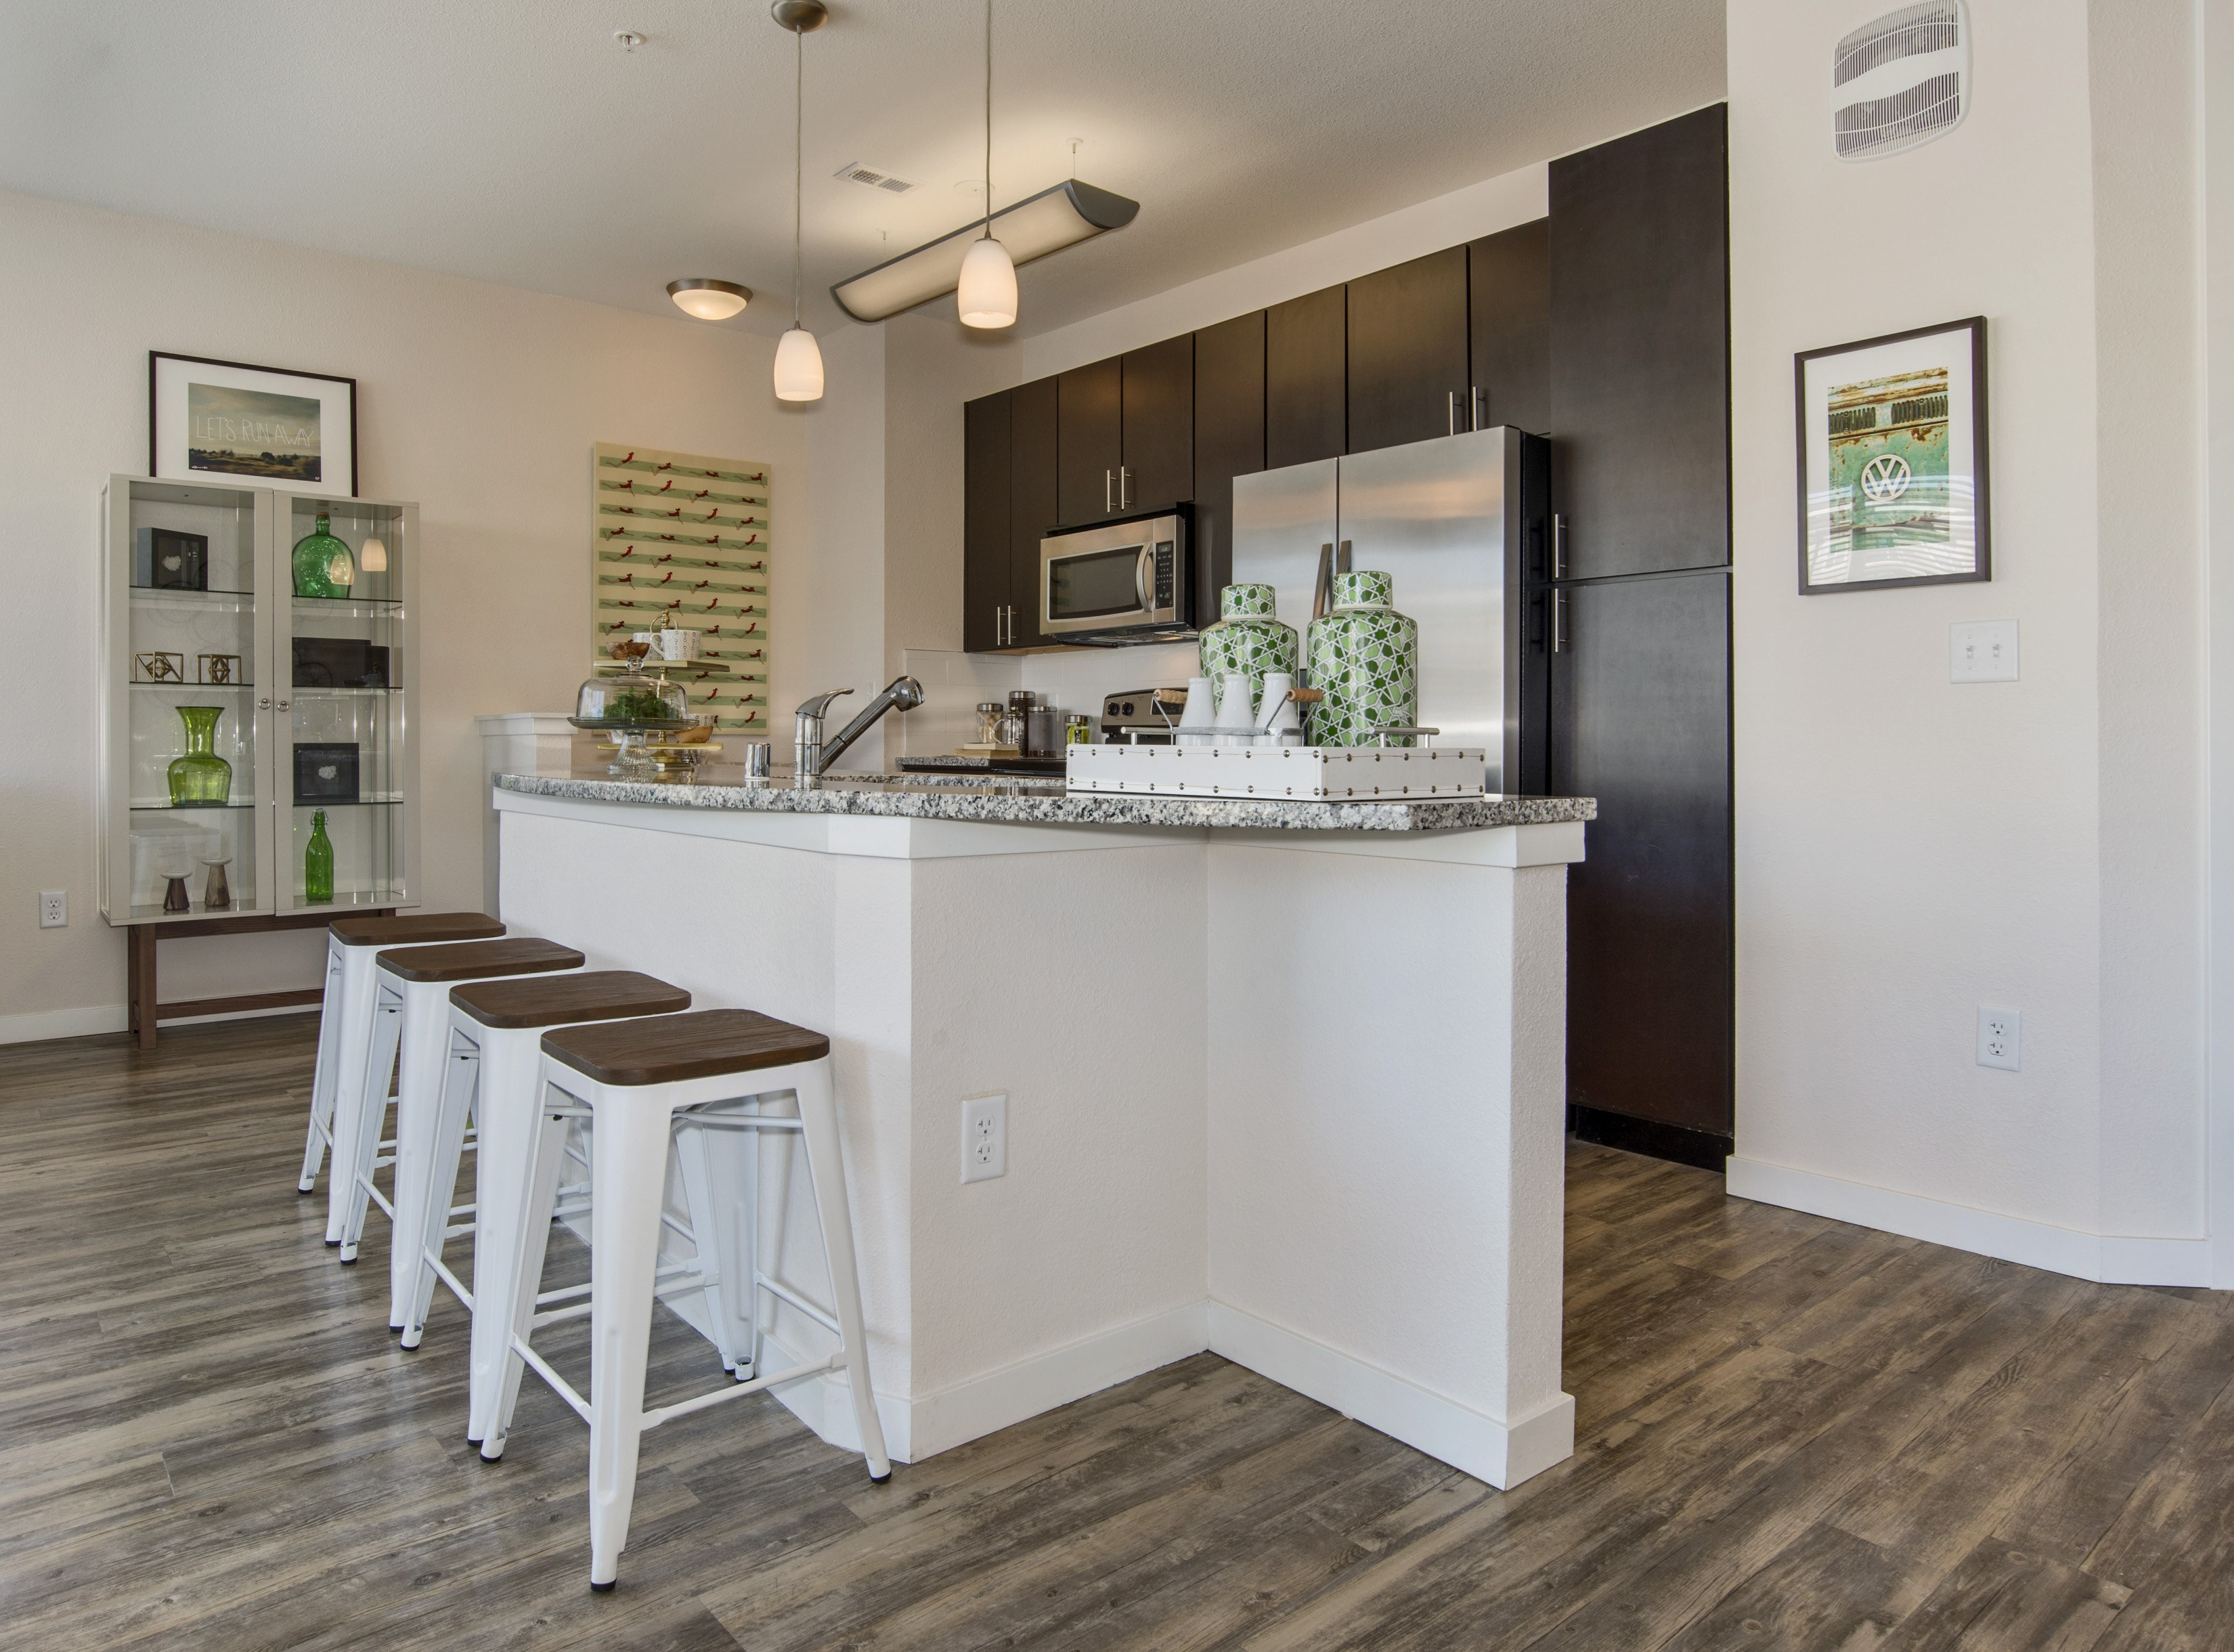 Kitchen at Westlink at Oak Station Apartments in Lakewood, CO